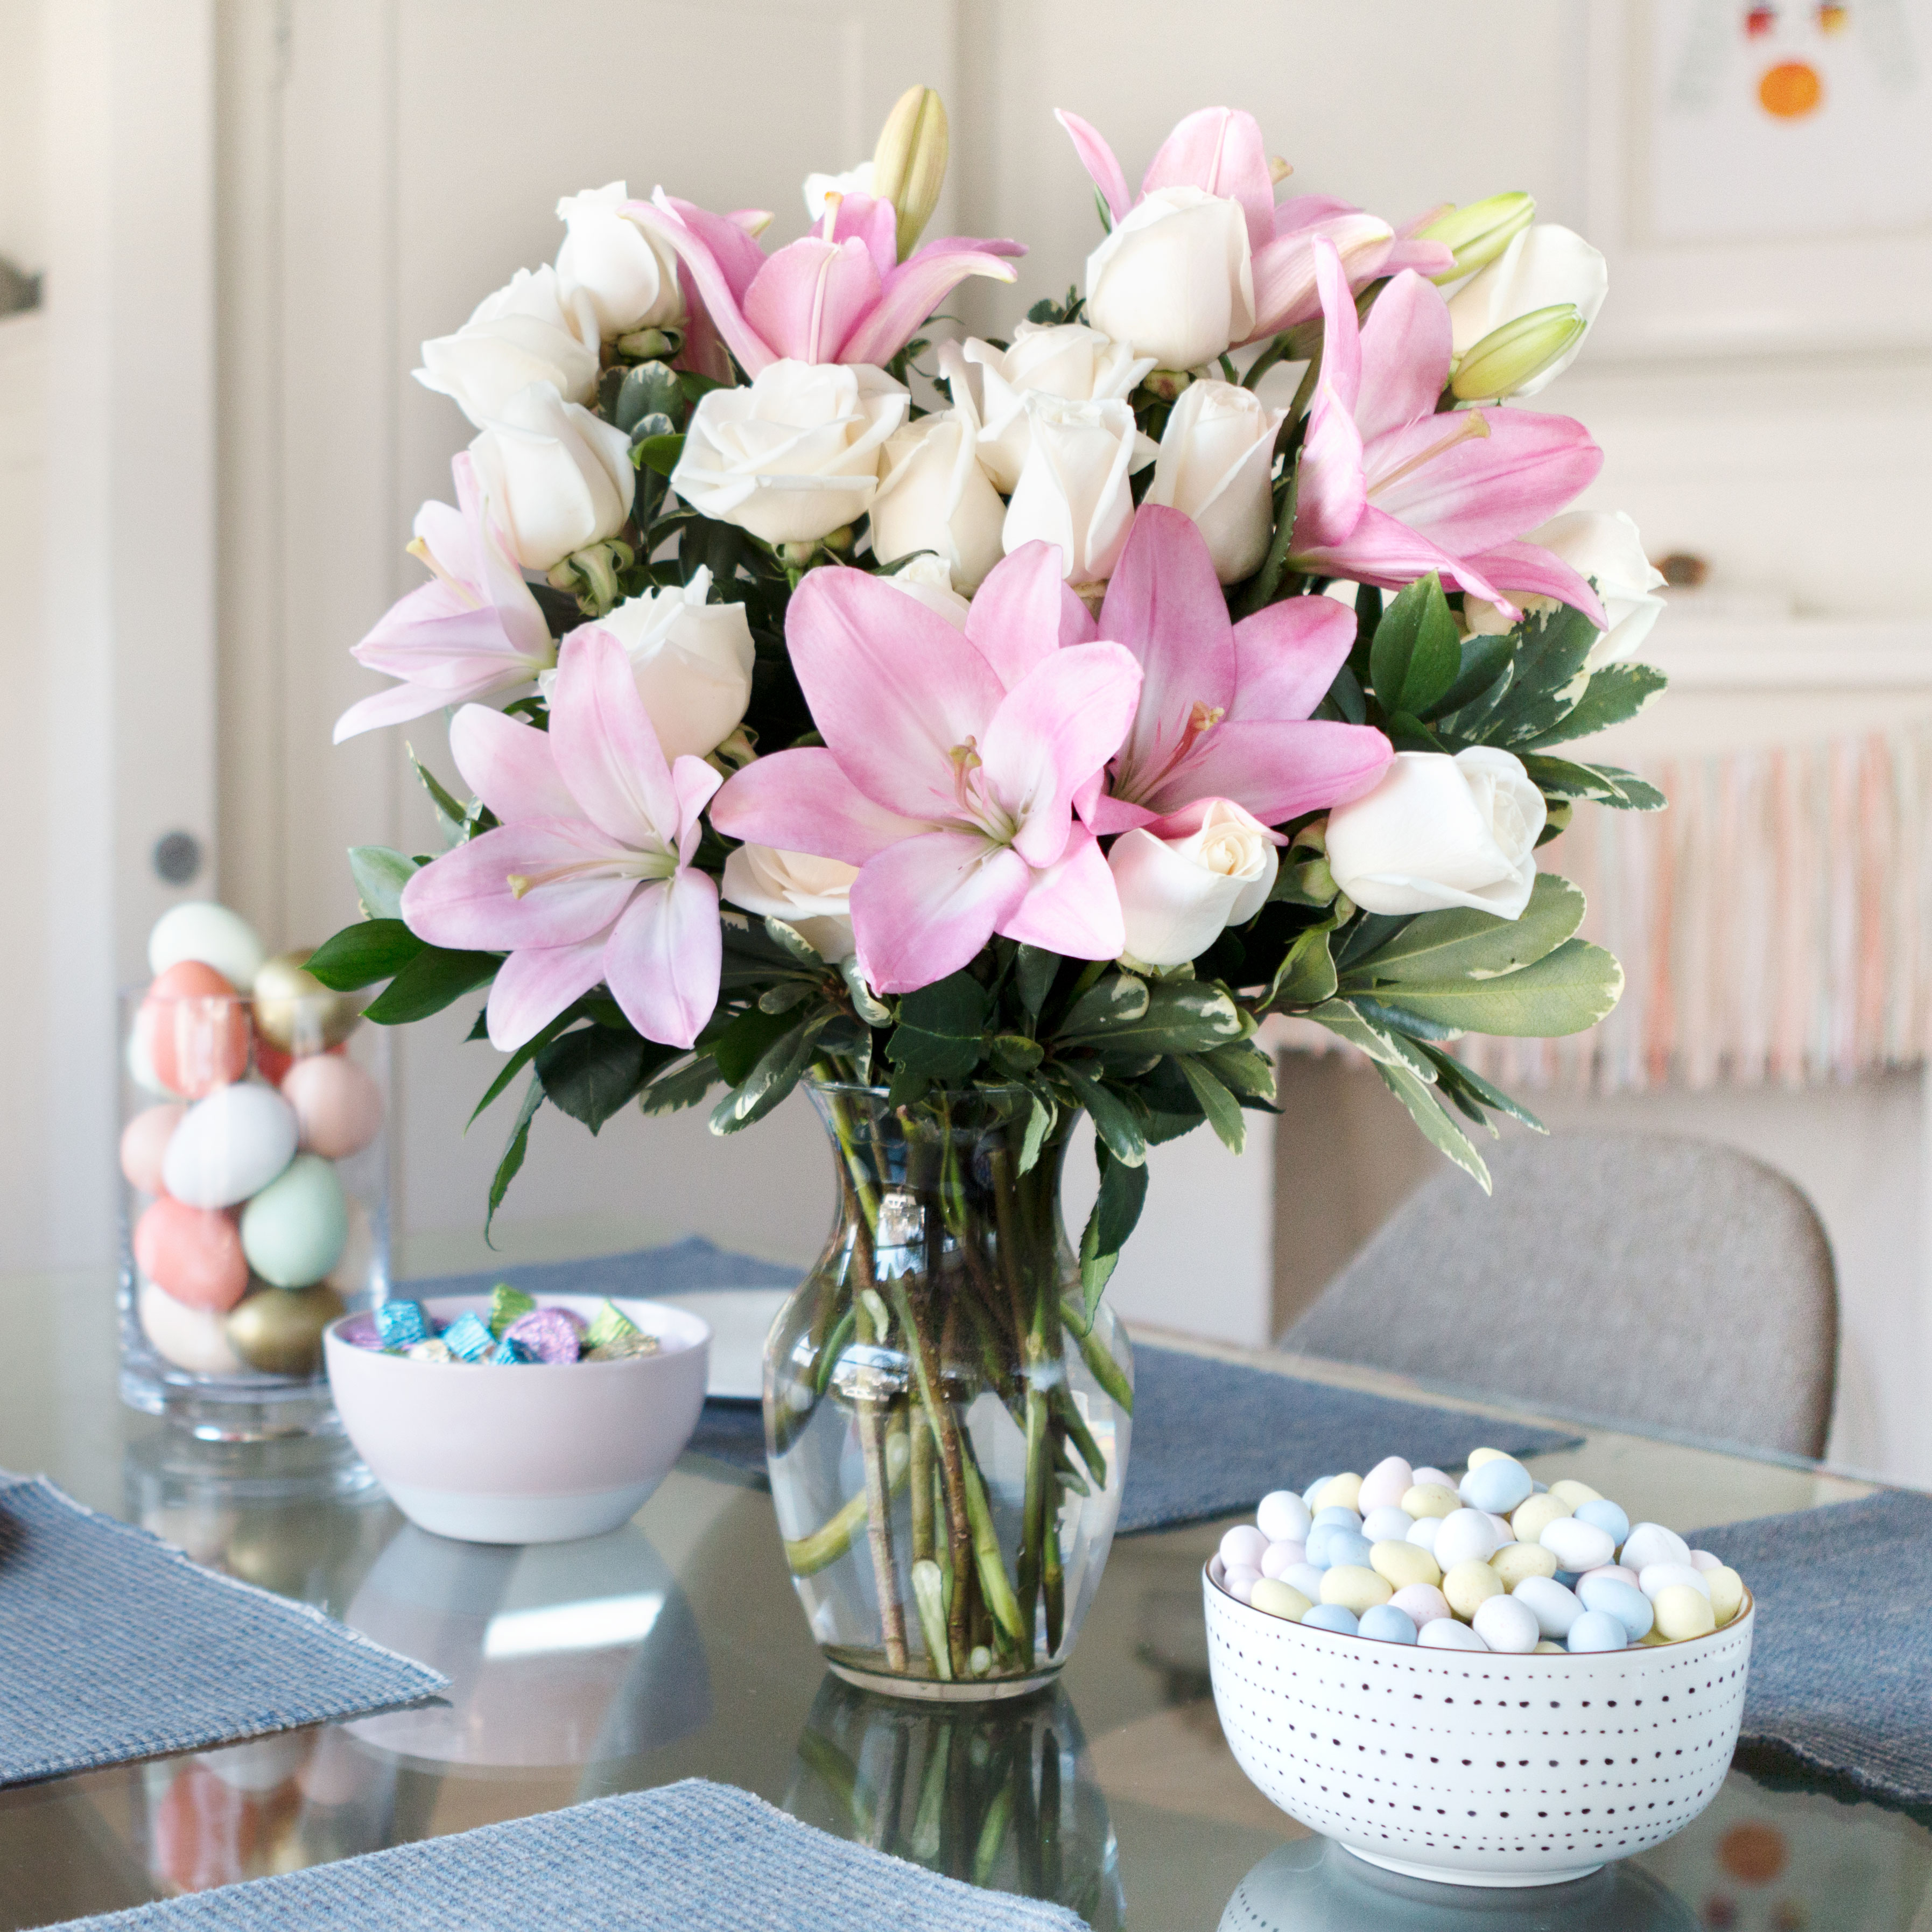 Pink lilies, white roses, and more in clear vase on Easter table with chocolate